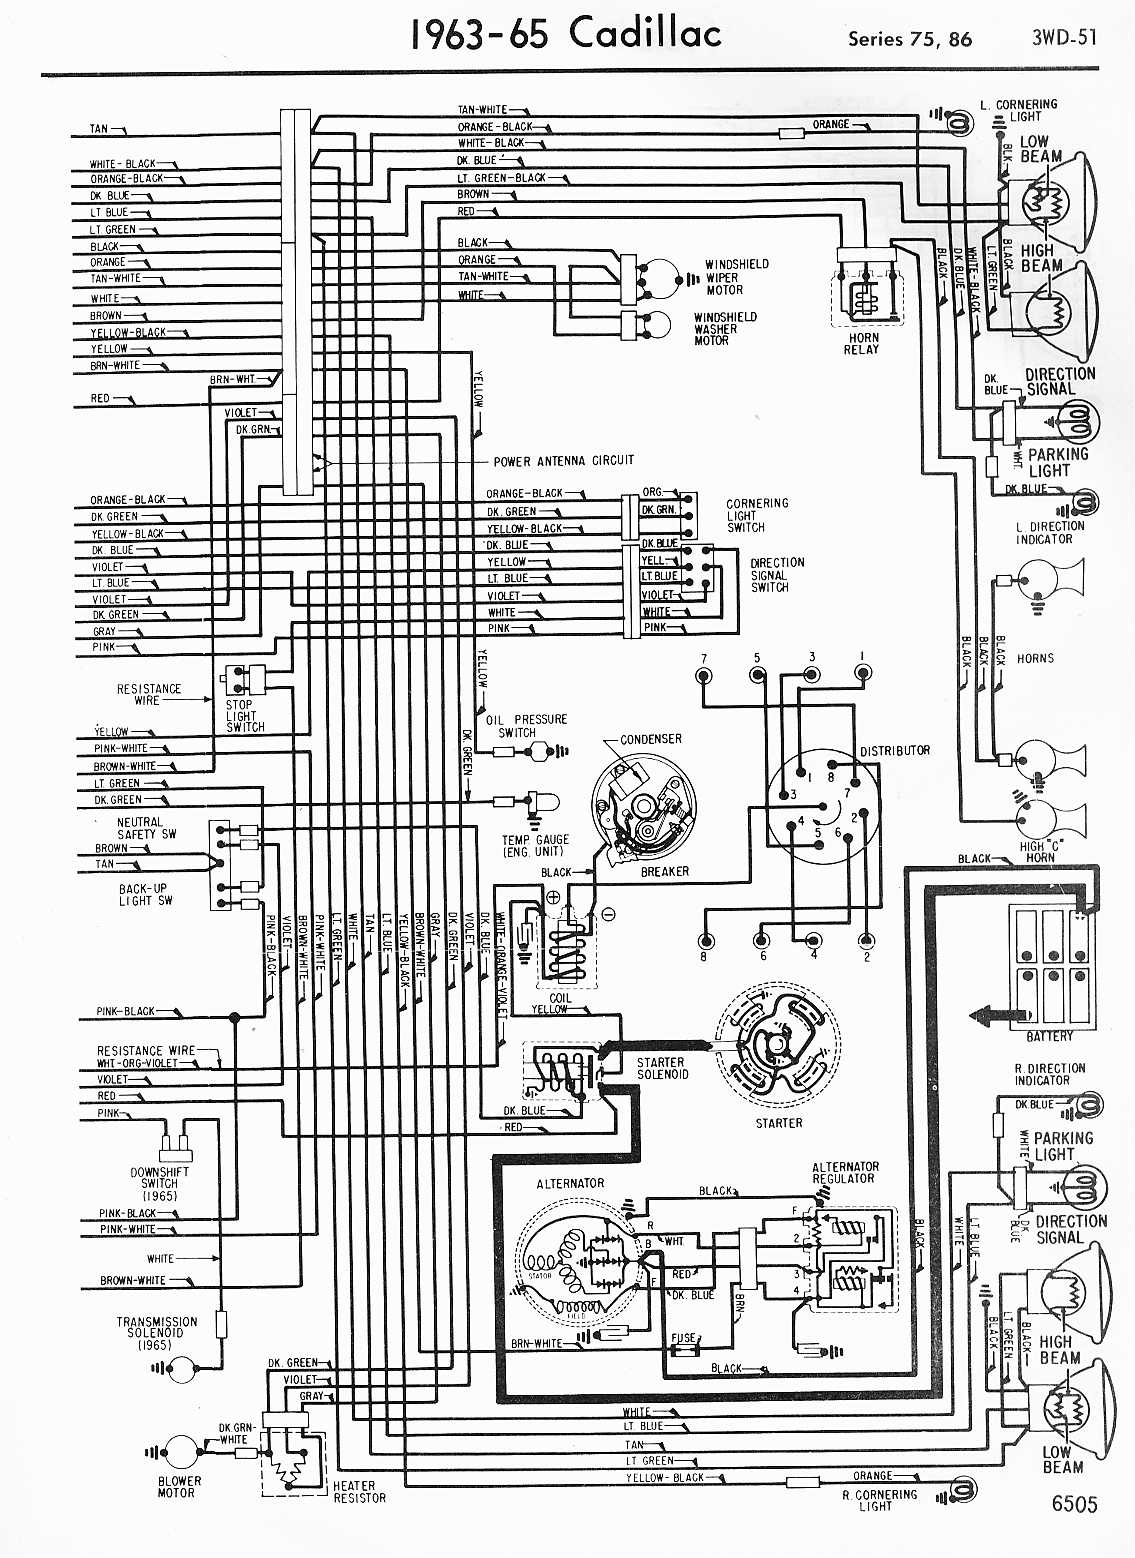 Cadillac Wiring Diagrams : Cadillac fleetwood passenger at all quit working